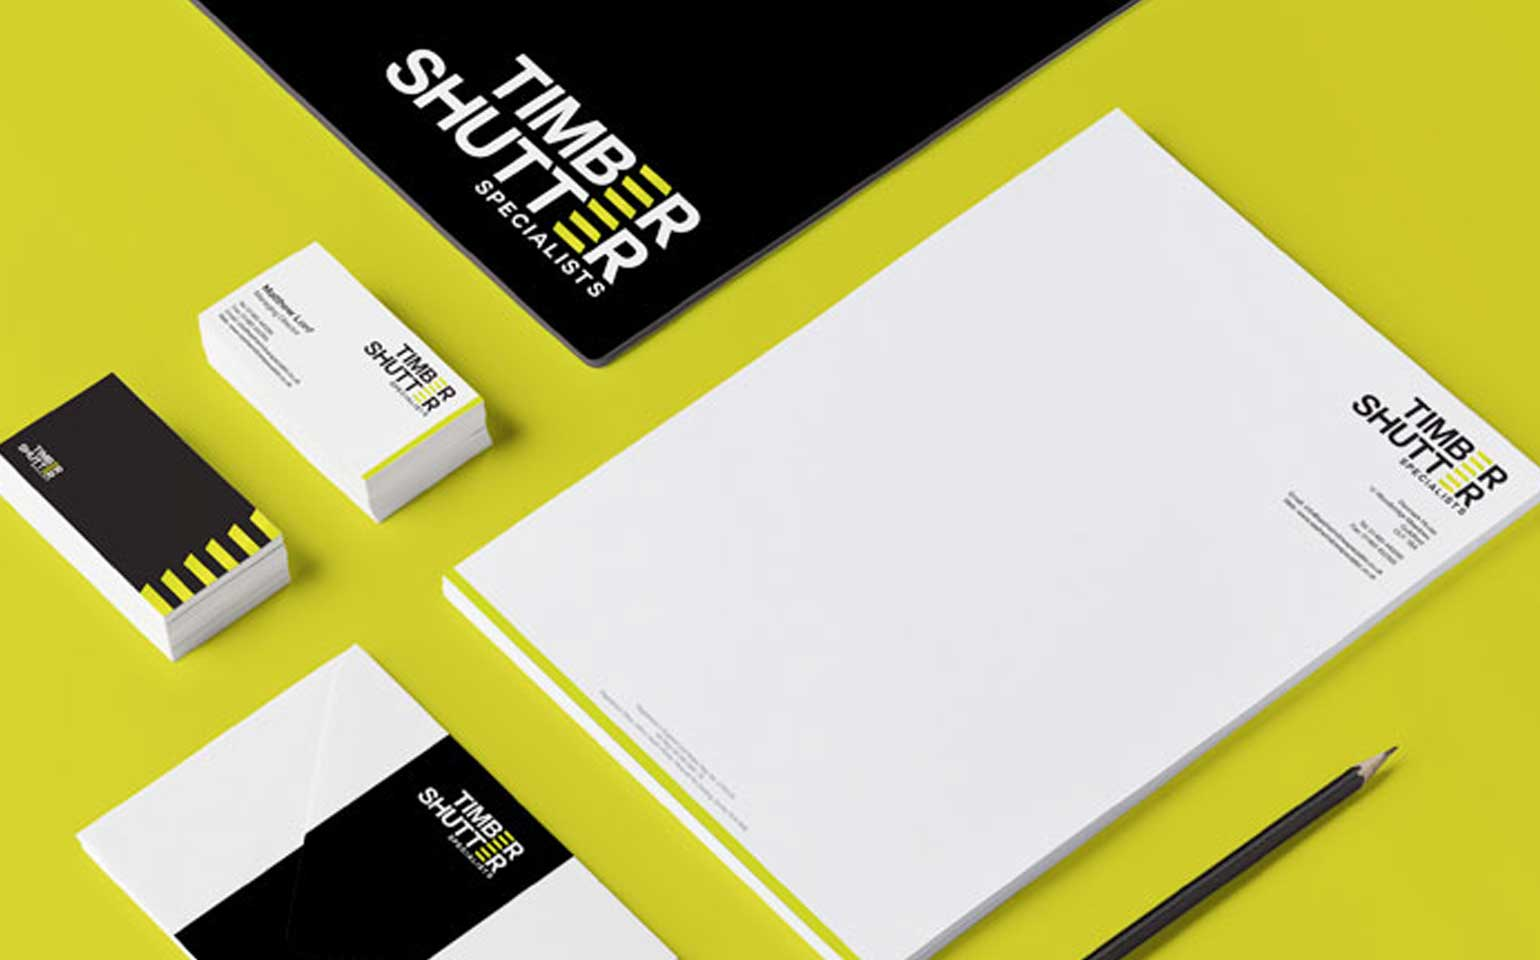 FULL STATIONARY DESIGN AND PRINT